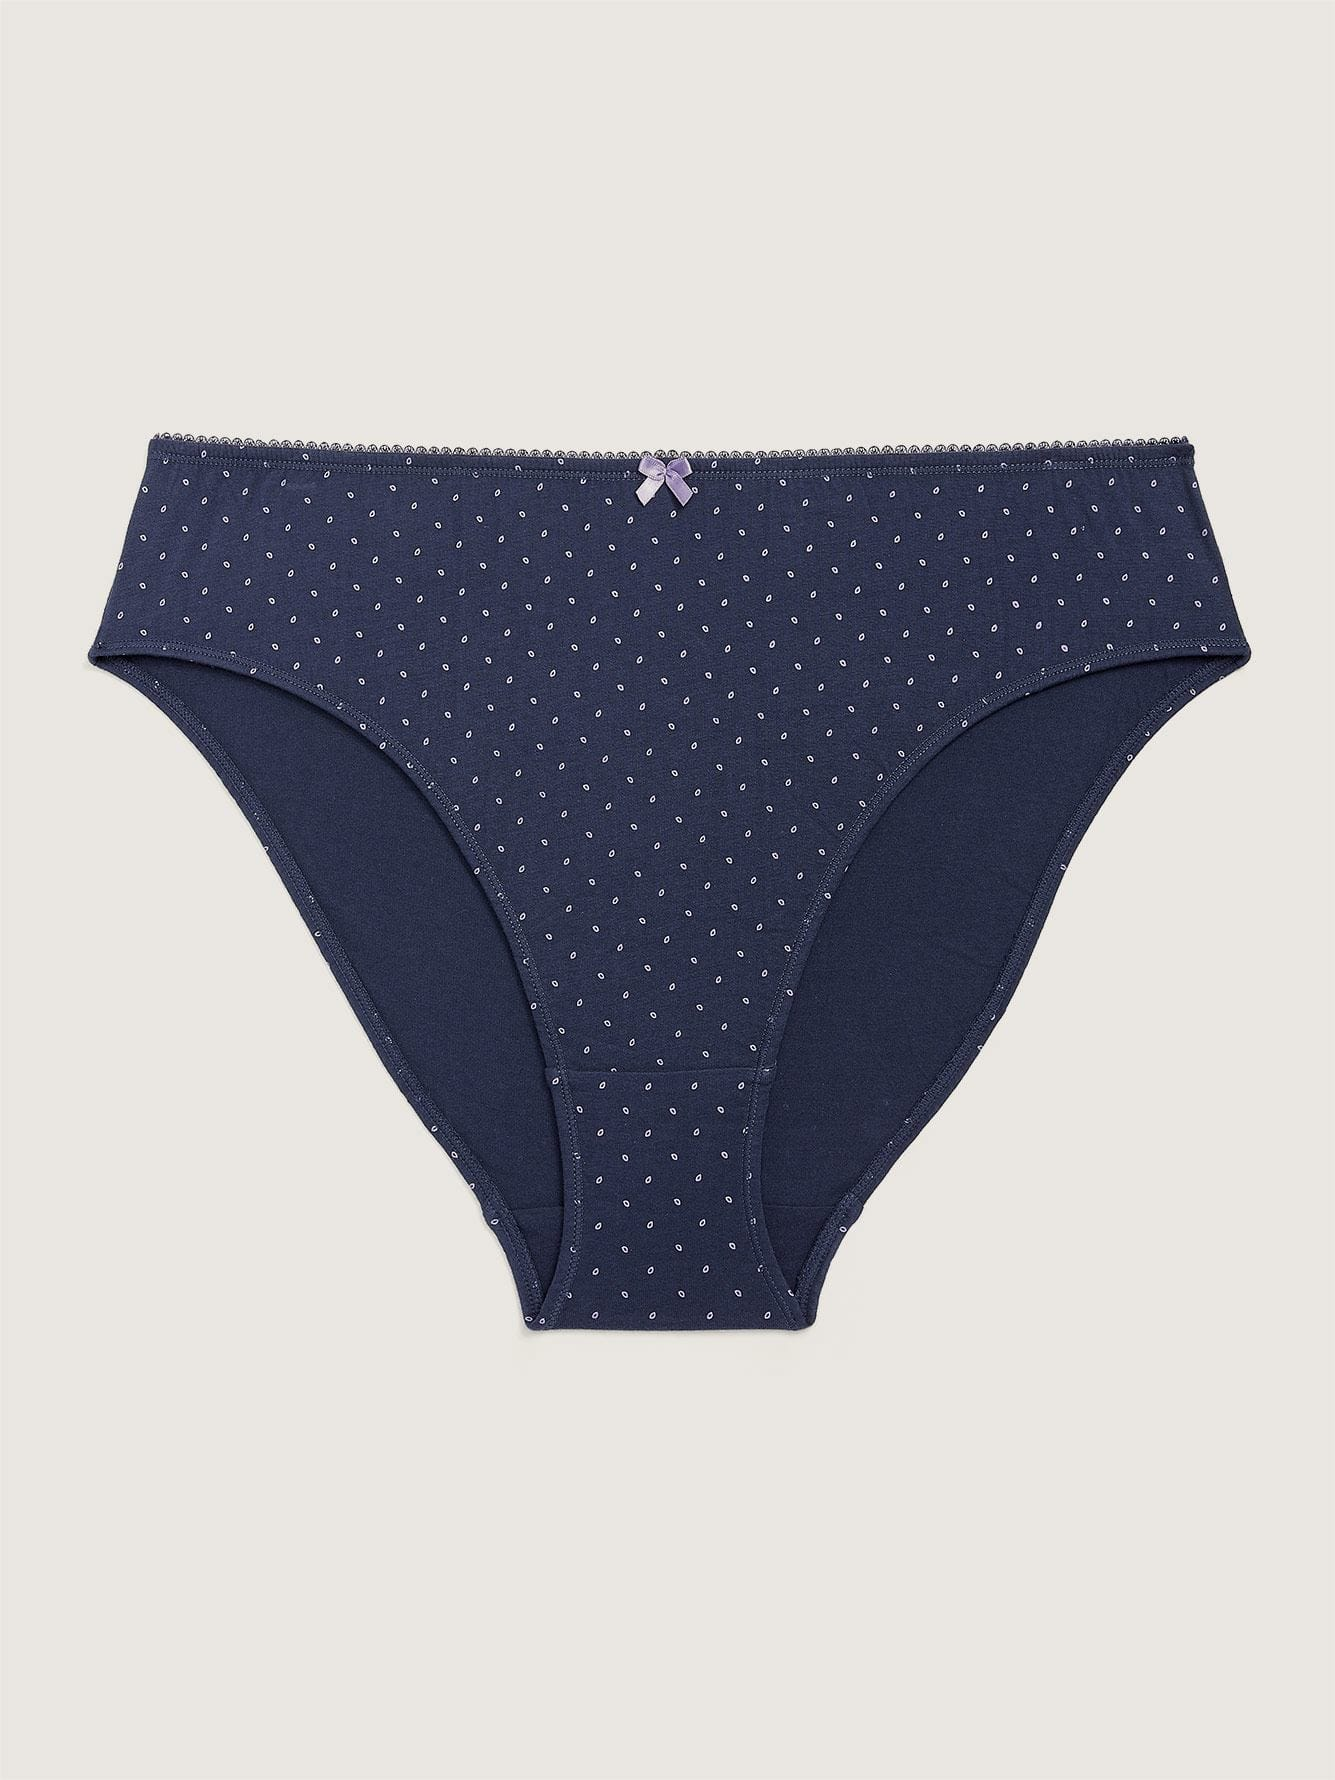 Printed Cotton High Cut Brief Panty